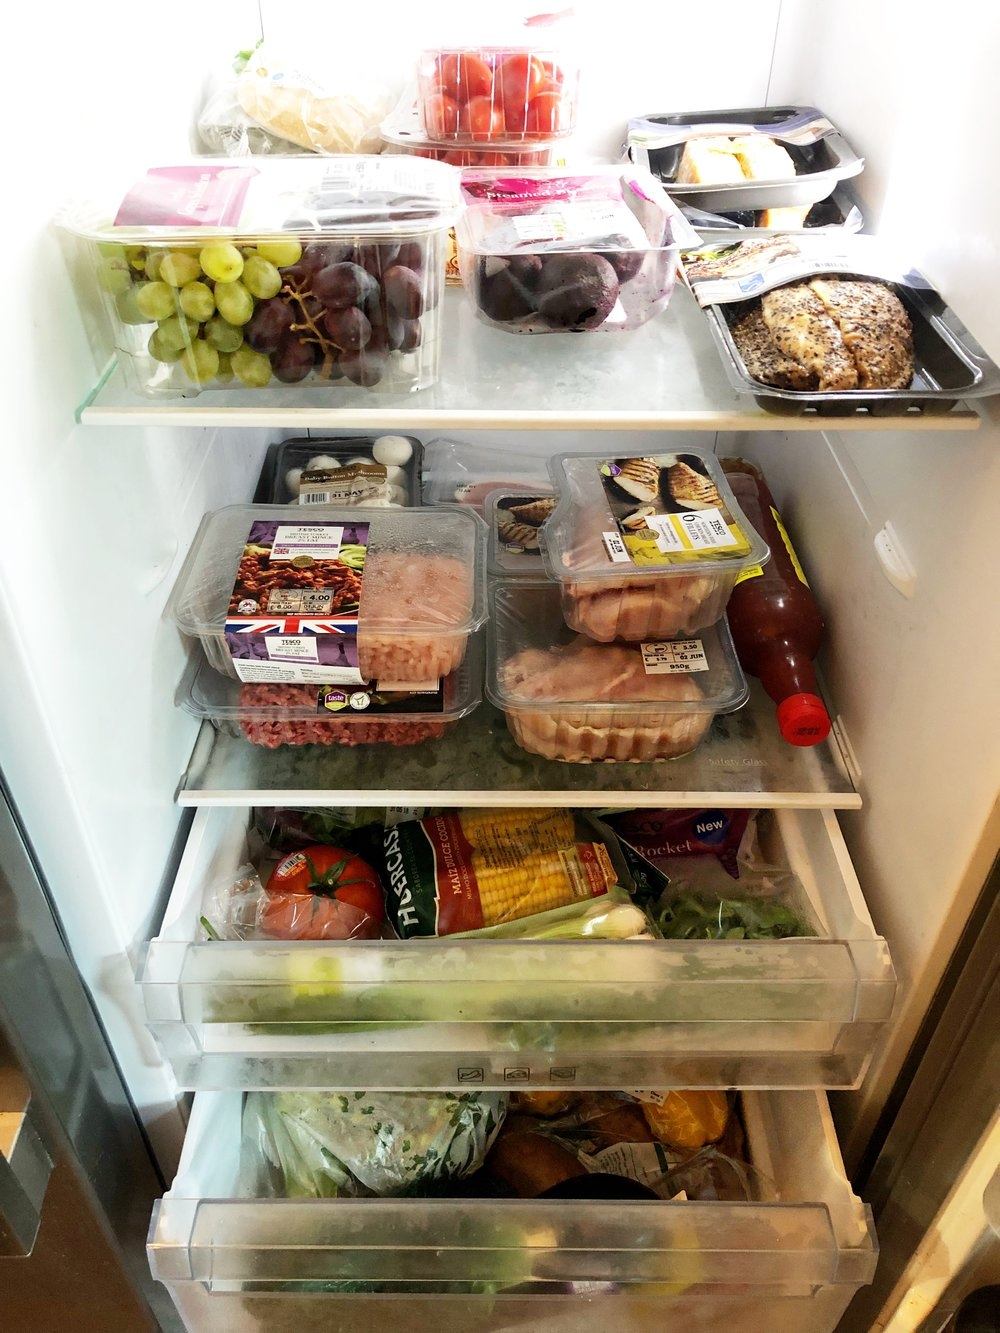 My fridge is fully stocked with healthy food!